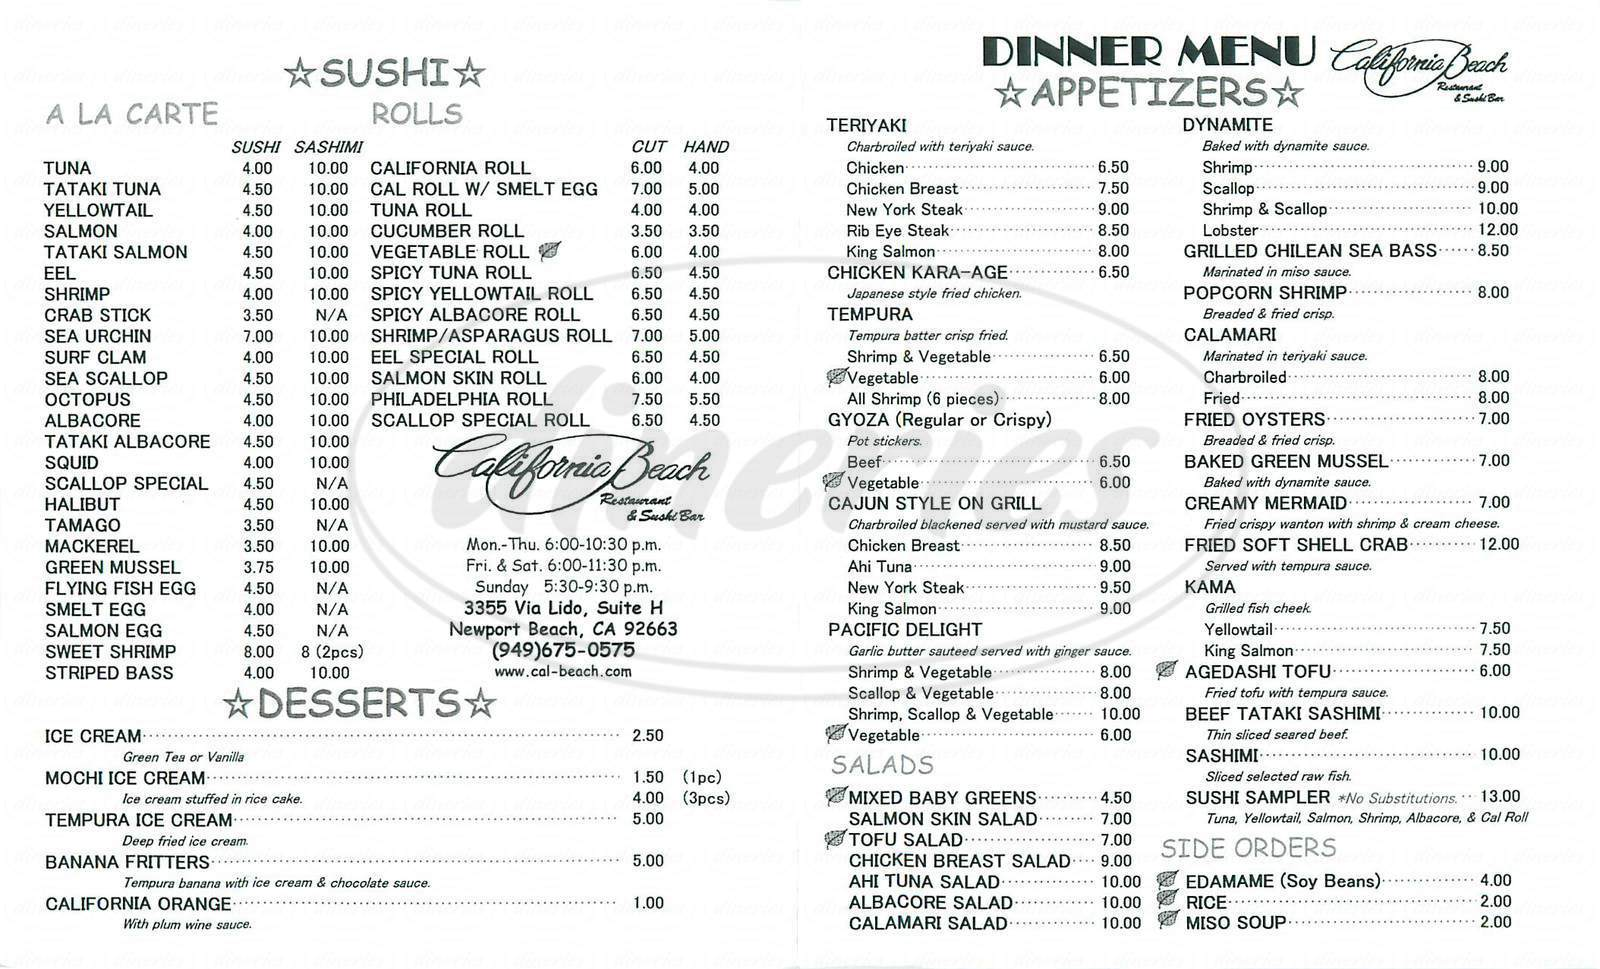 menu for California Beach Restaurant